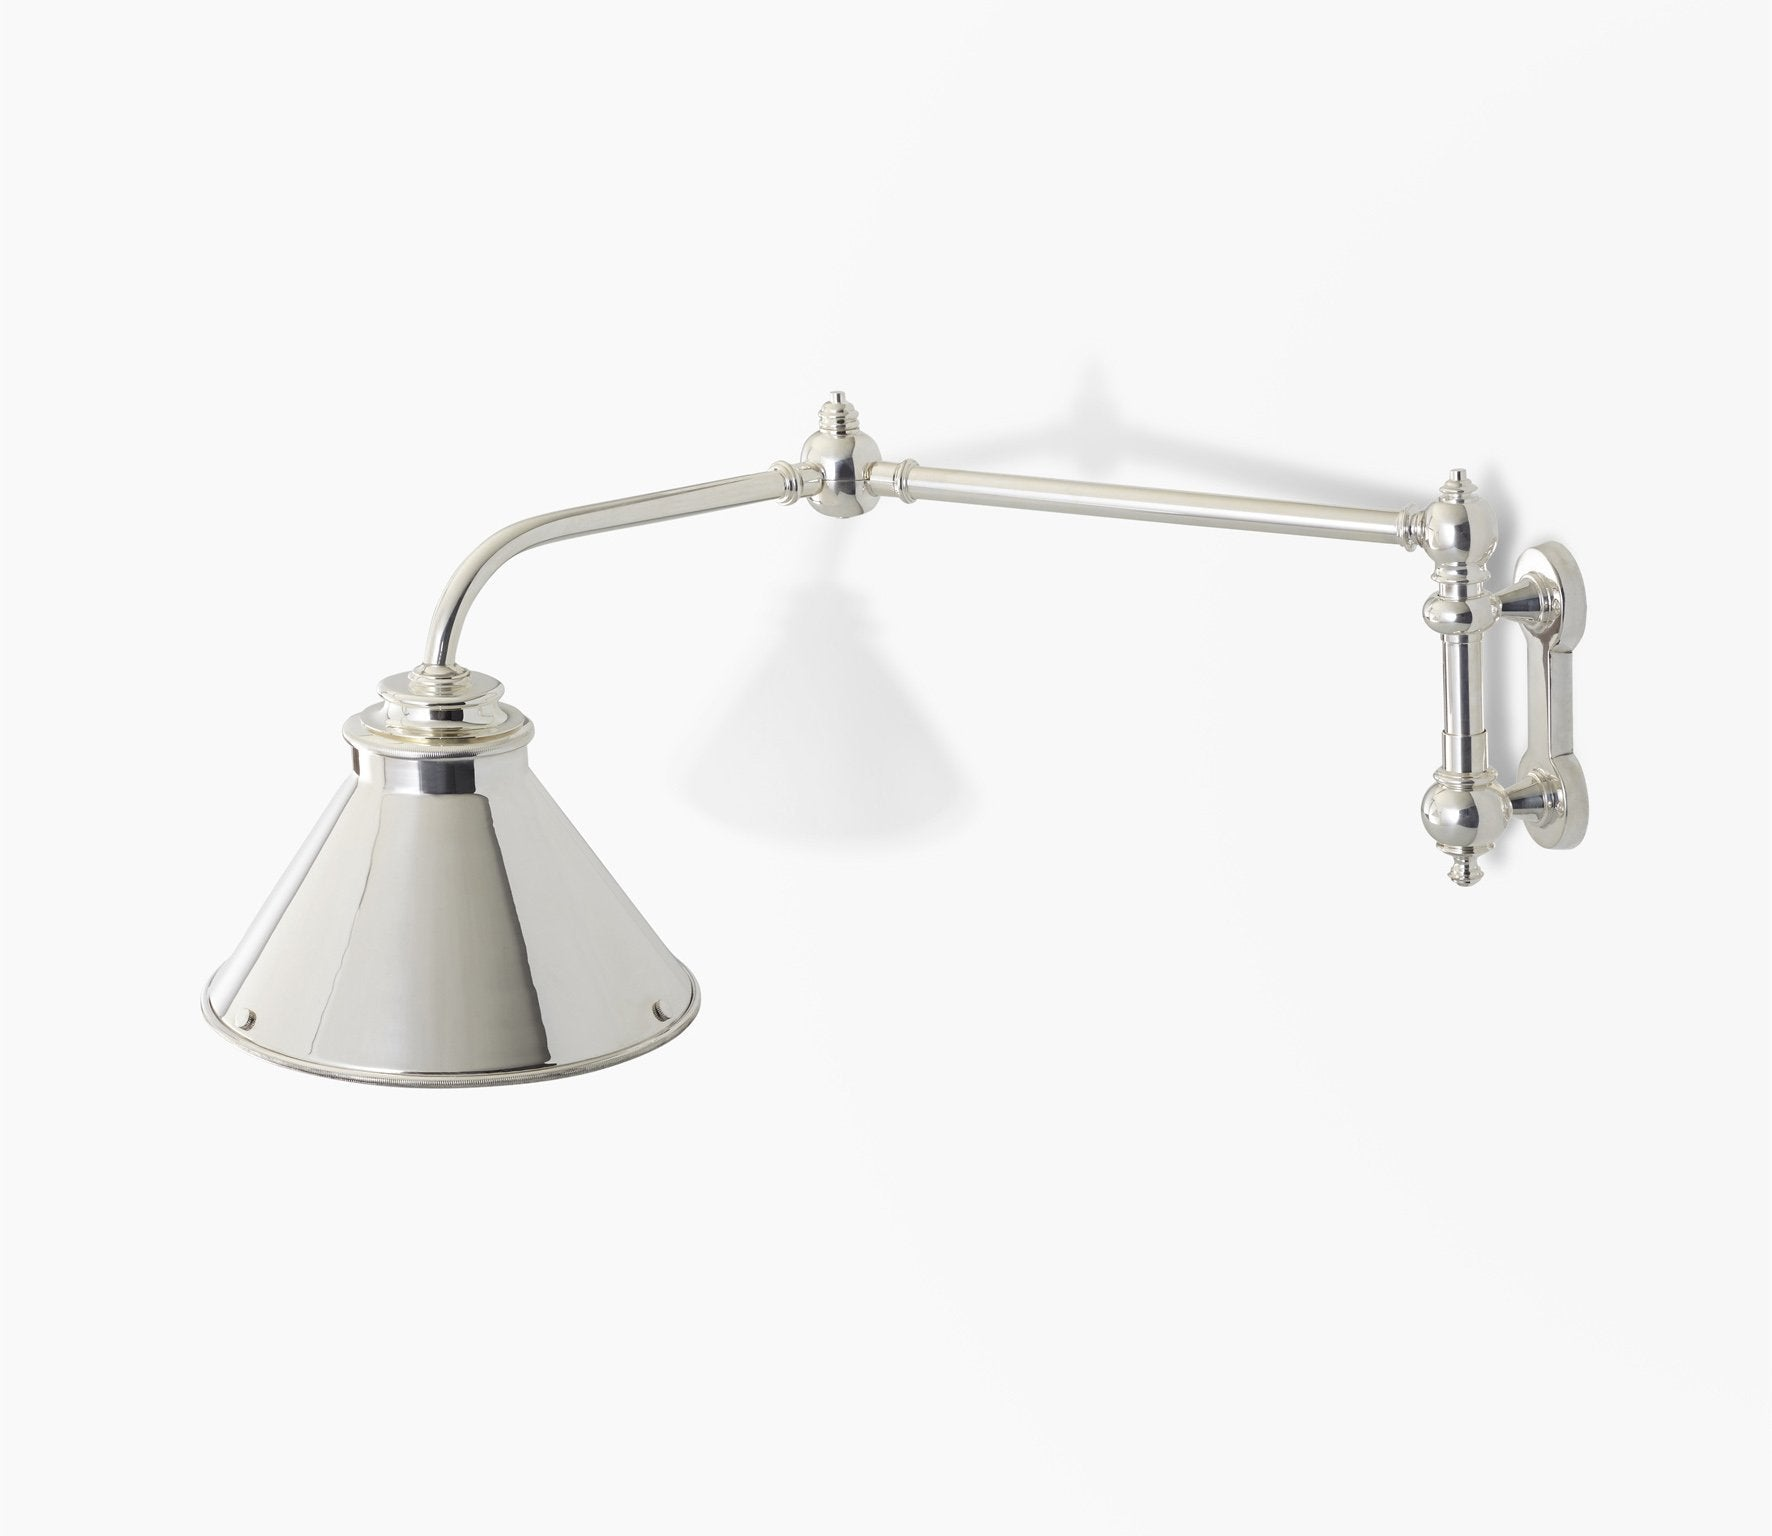 Gilbert Down Wall Light with Metal Shade Product Image 1